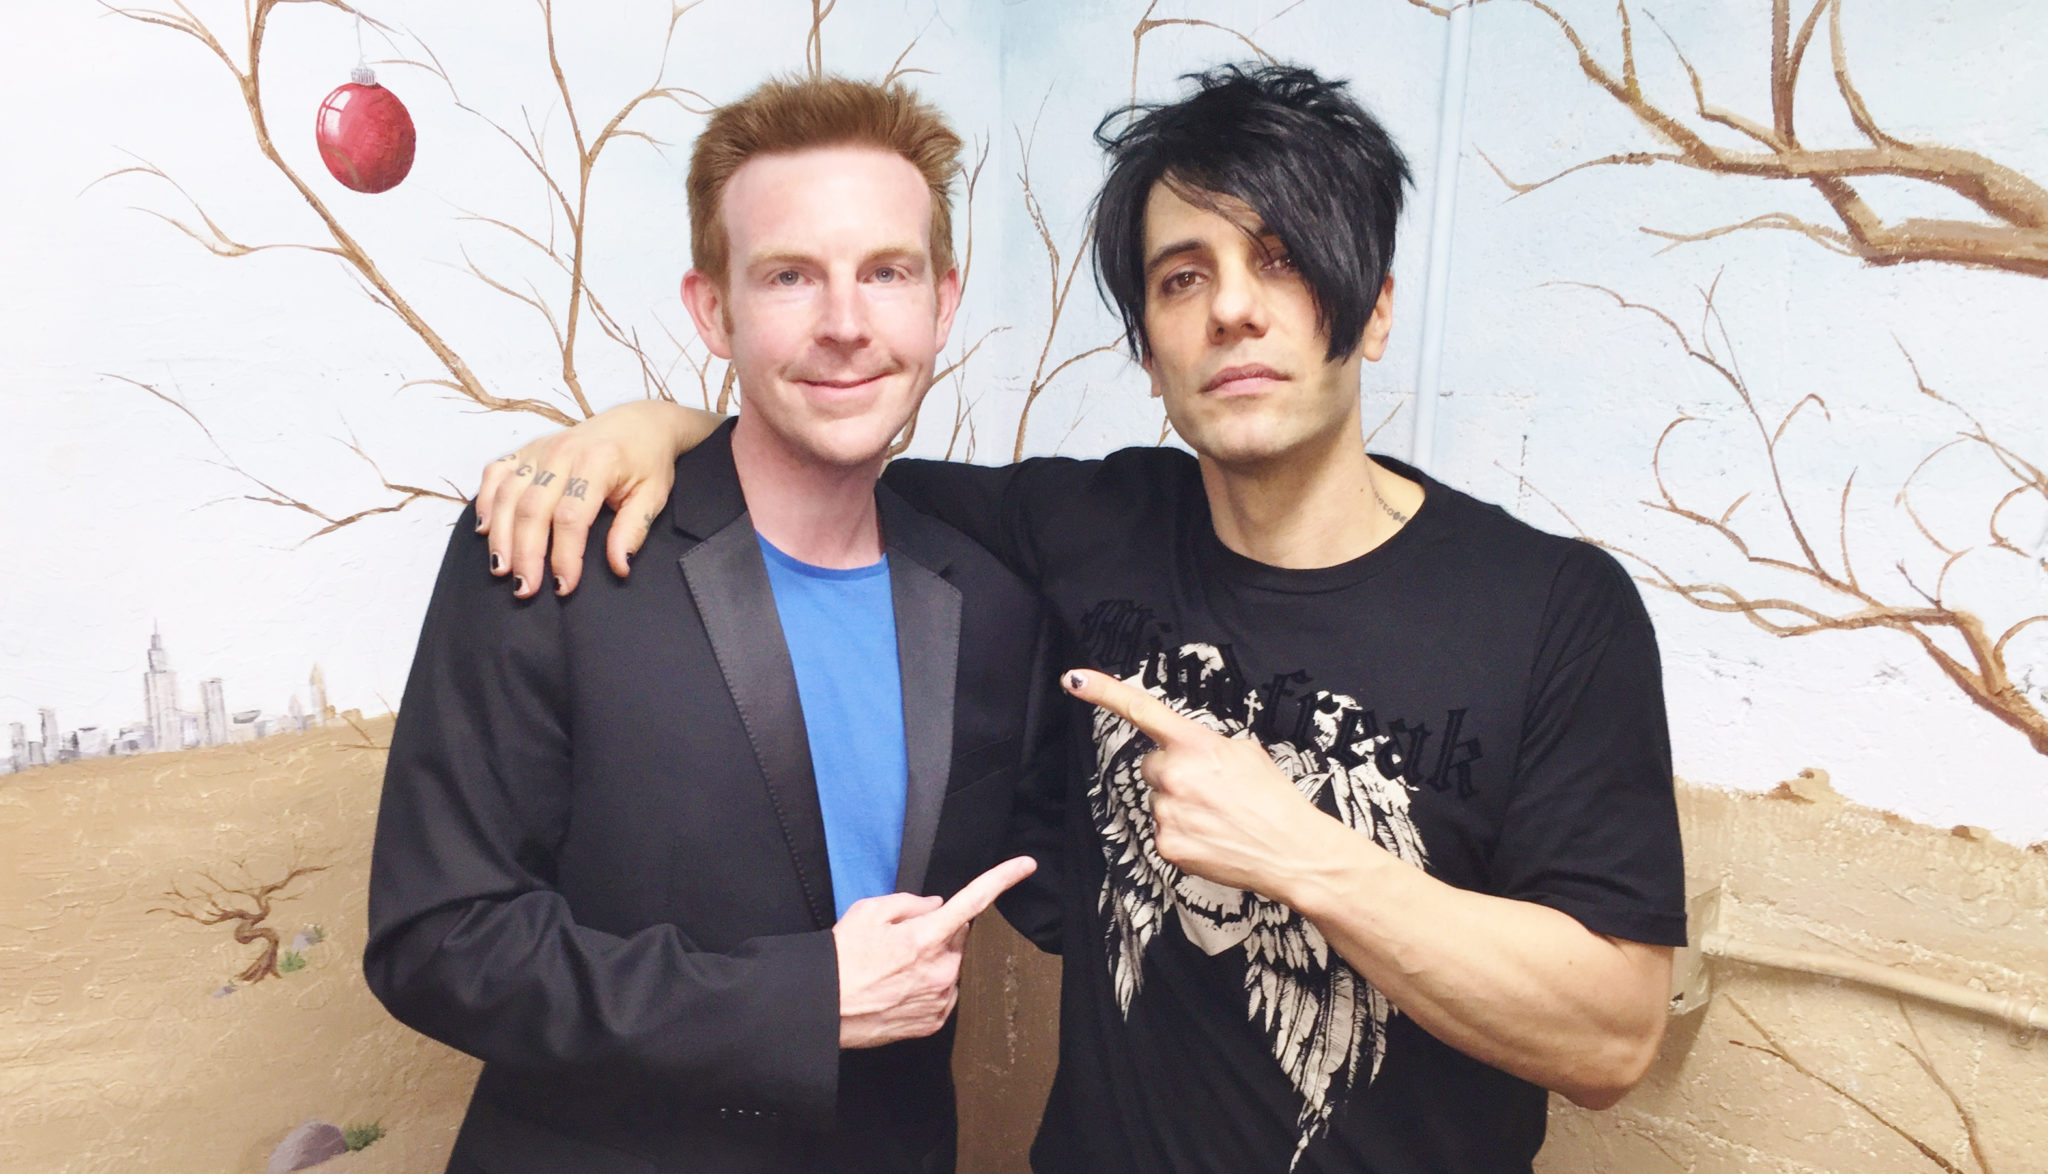 Enjoy Celebrity Radio's Criss Angel EXCLUSIVE Interview MINDFREAK LIVE!… After 7 years performing Believe by Cirque Du Soleil at the Luxor Las Vegas, Criss Angel […]